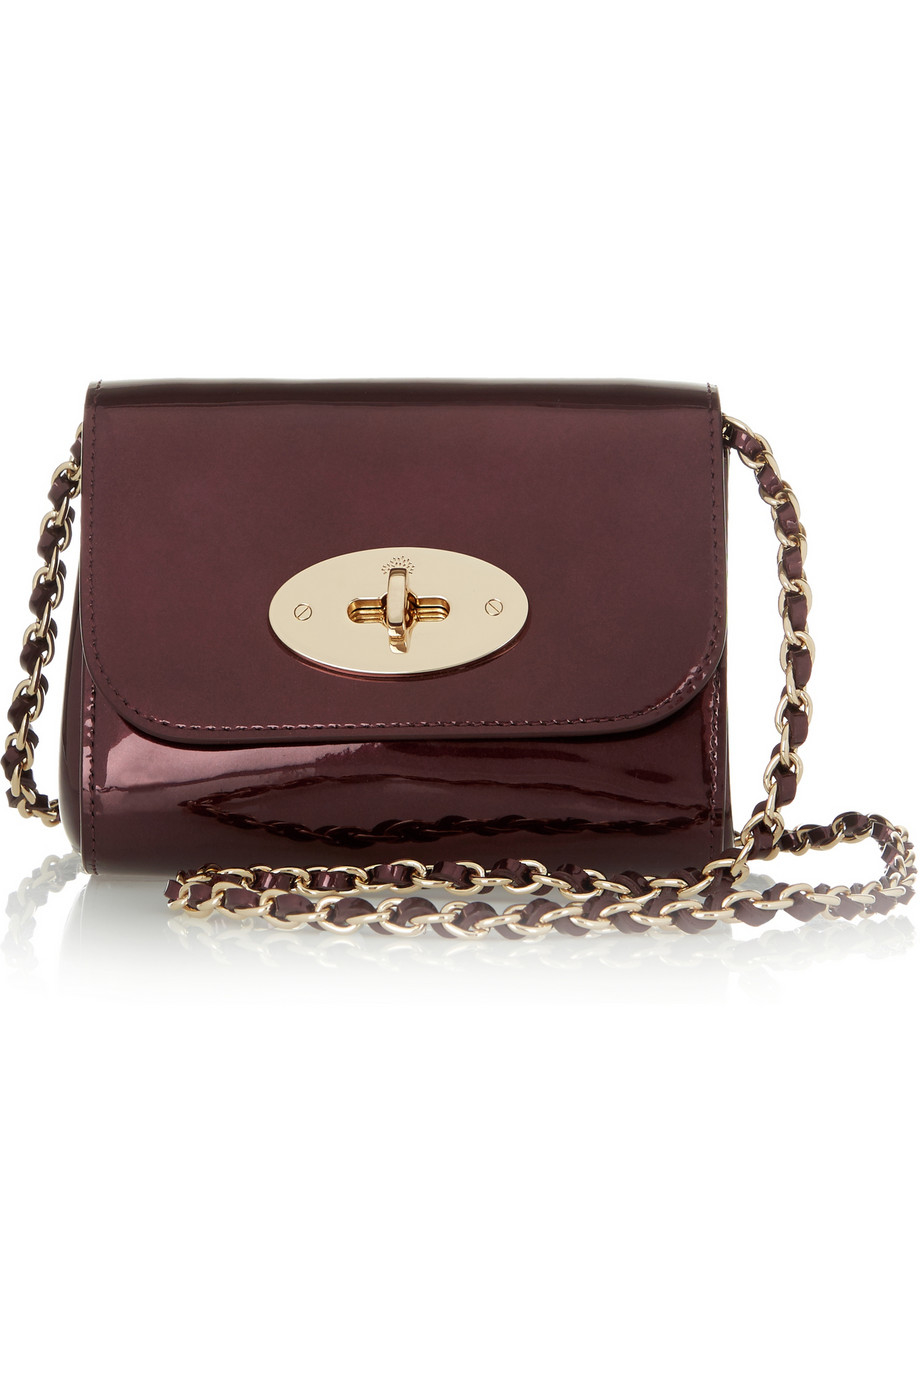 ... denmark mulberry lily mini metallic leather shoulder bag in red lyst  bc347 90e42 ... 56ac5aed5351c